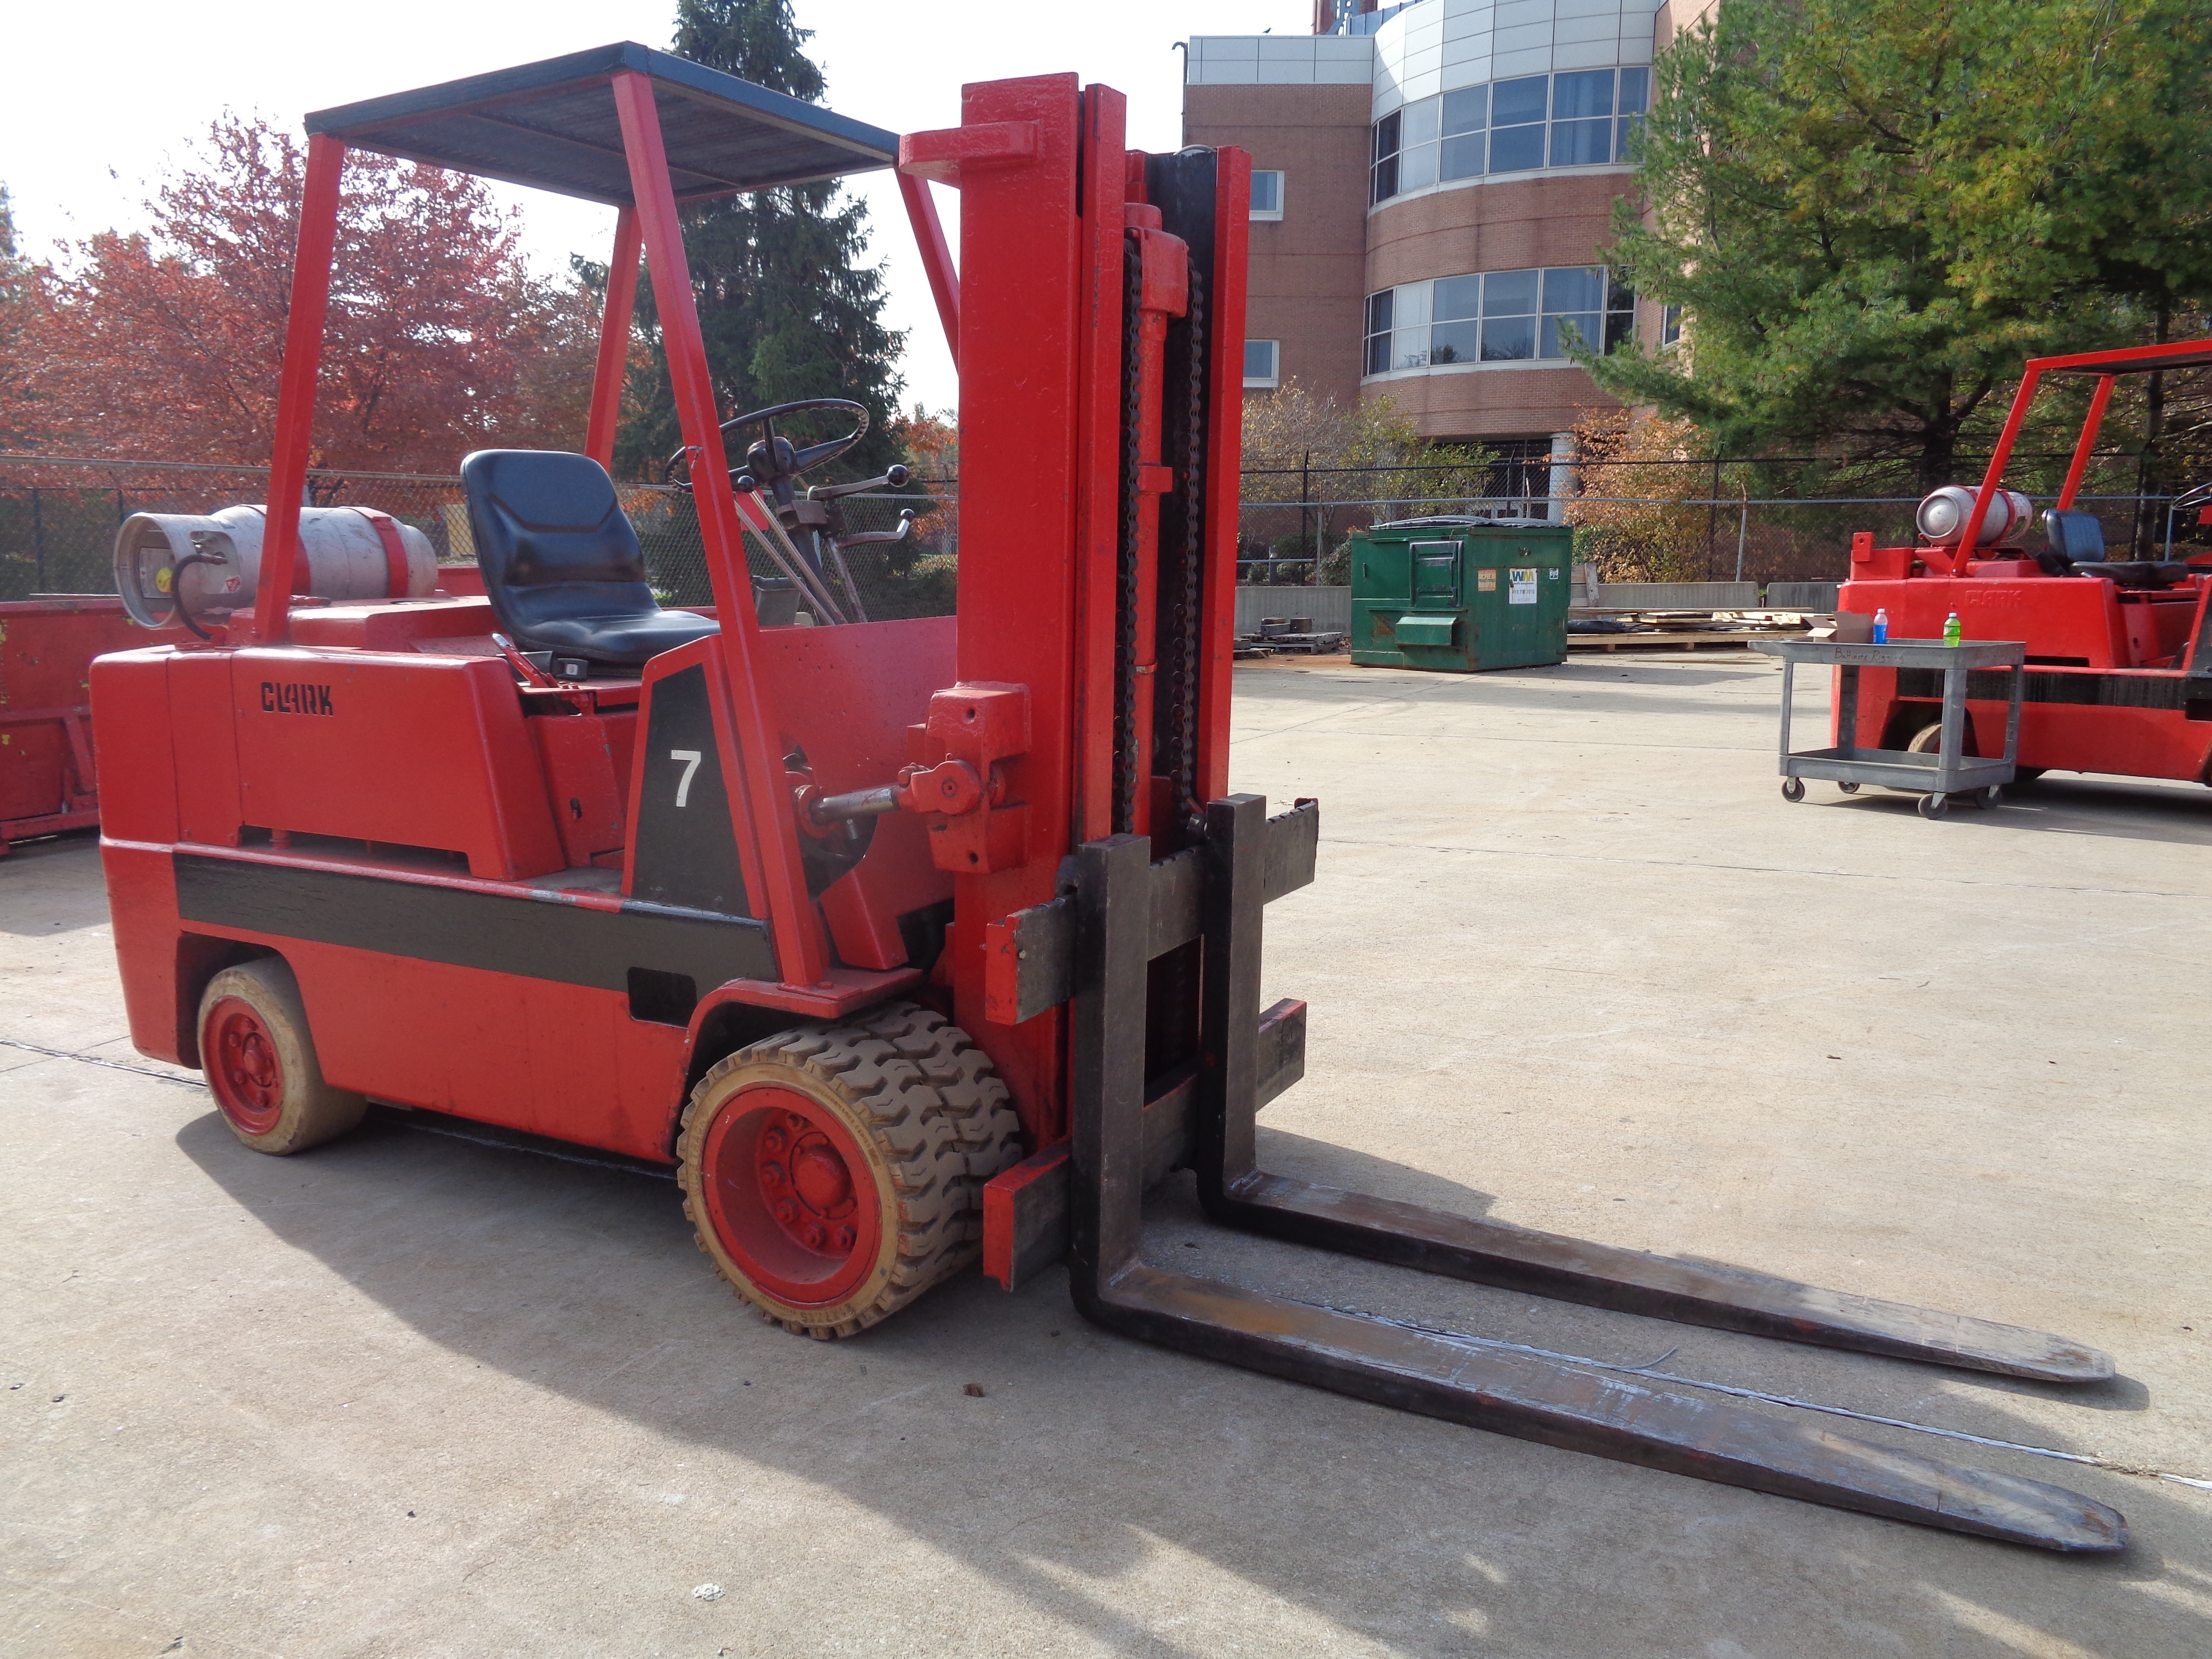 Clark C500-H120 Forklift- 12,000 lbs - Image 9 of 10